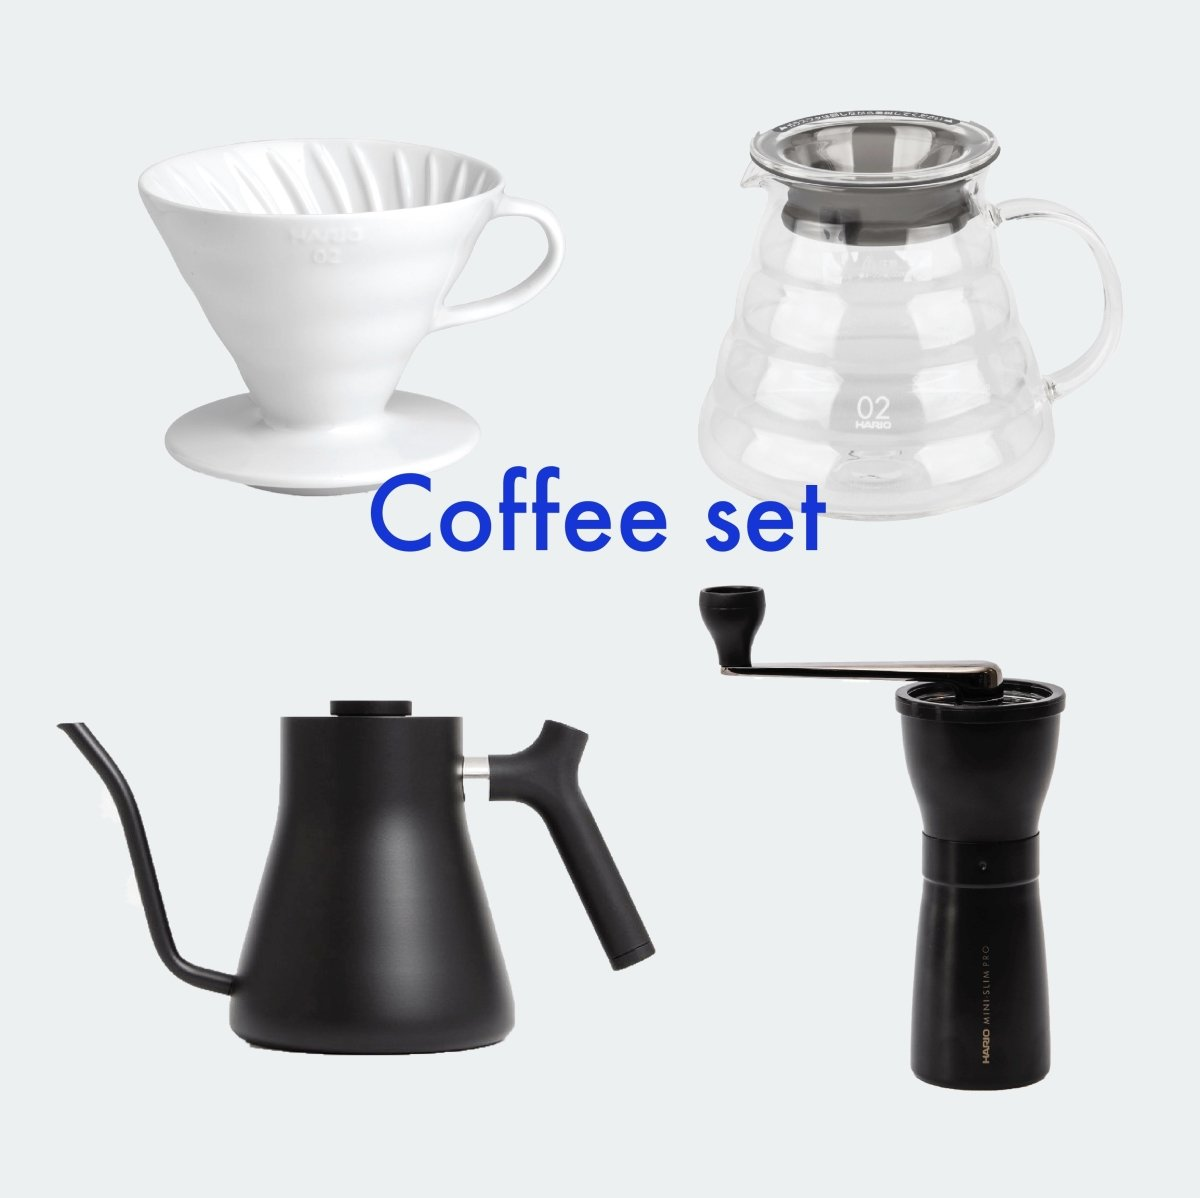 Hario Brewing Set With Hand Grinder, Stagg Kettle + Coffee - Bean Bros.